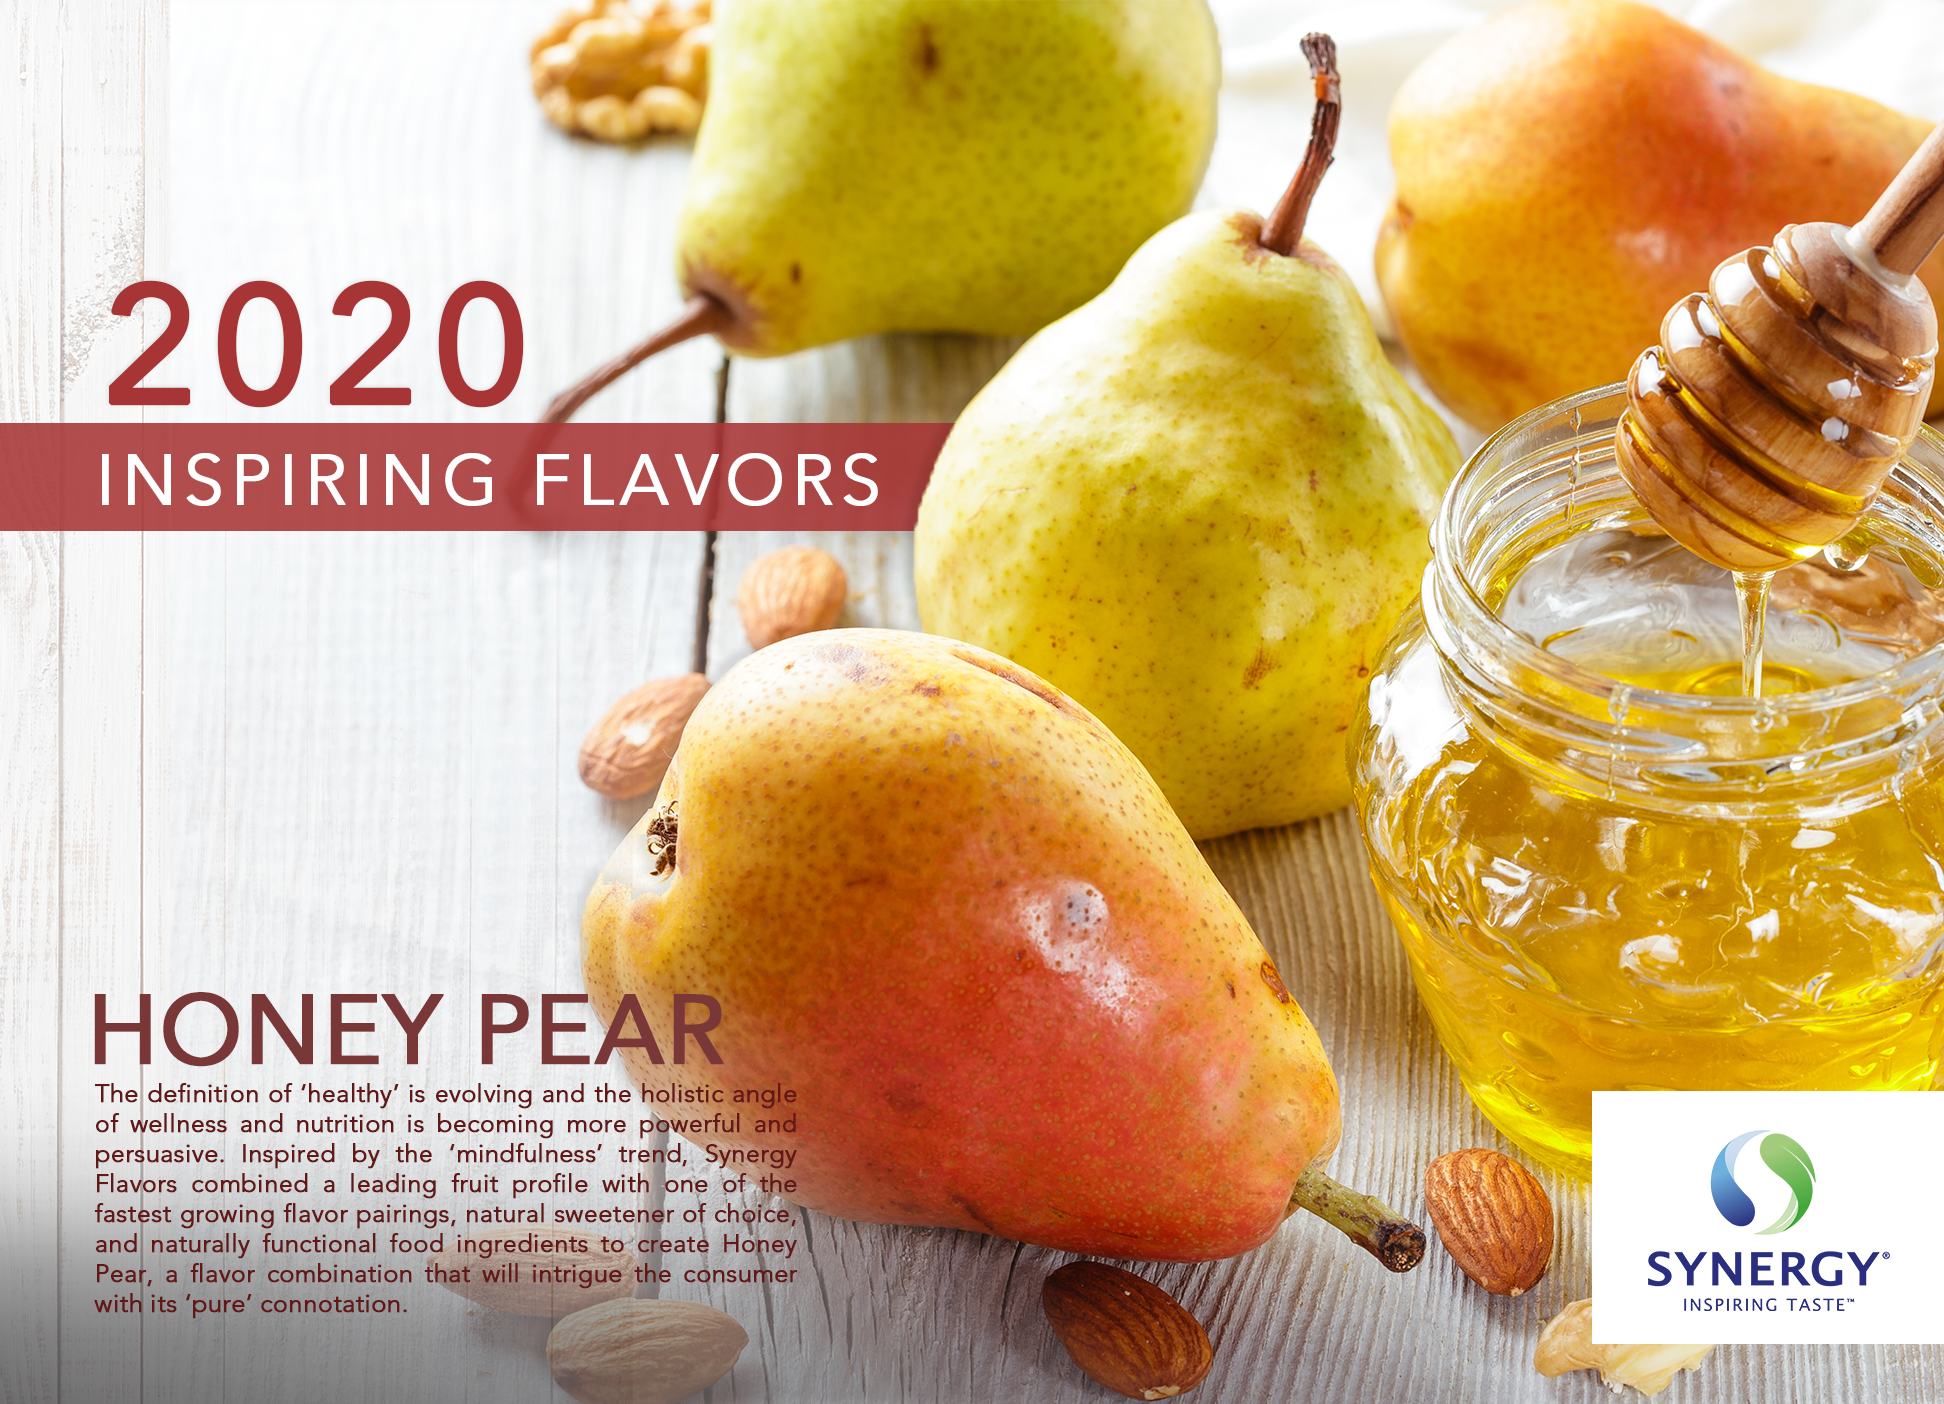 Inspiring Flavors 2020 - Honey Pear